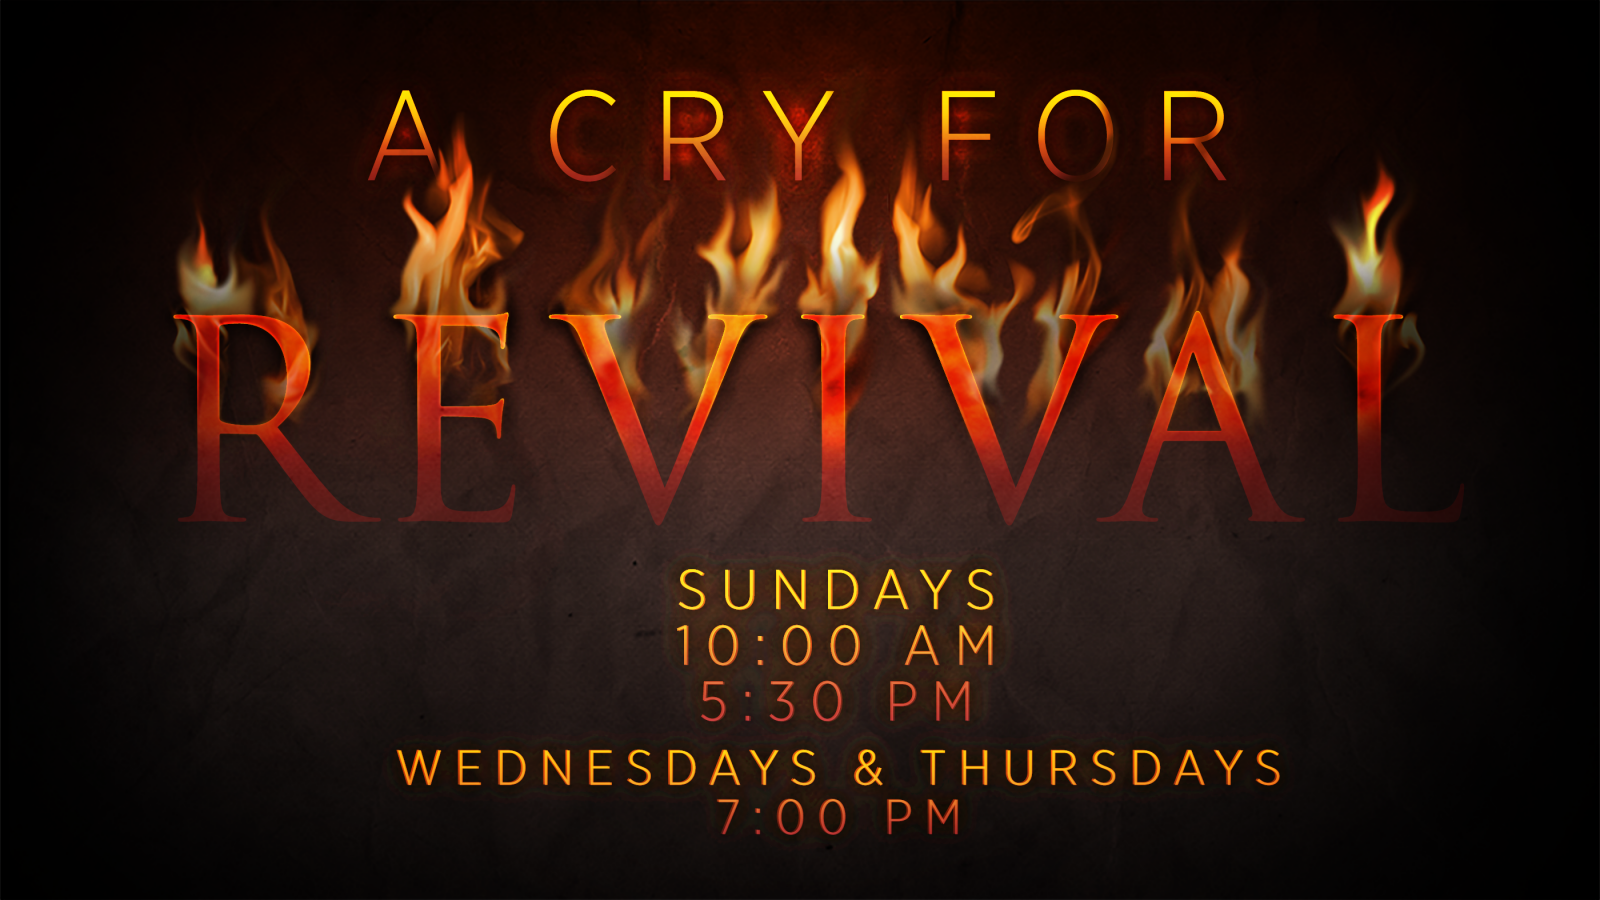 a_cry_for_revival-PSD-square